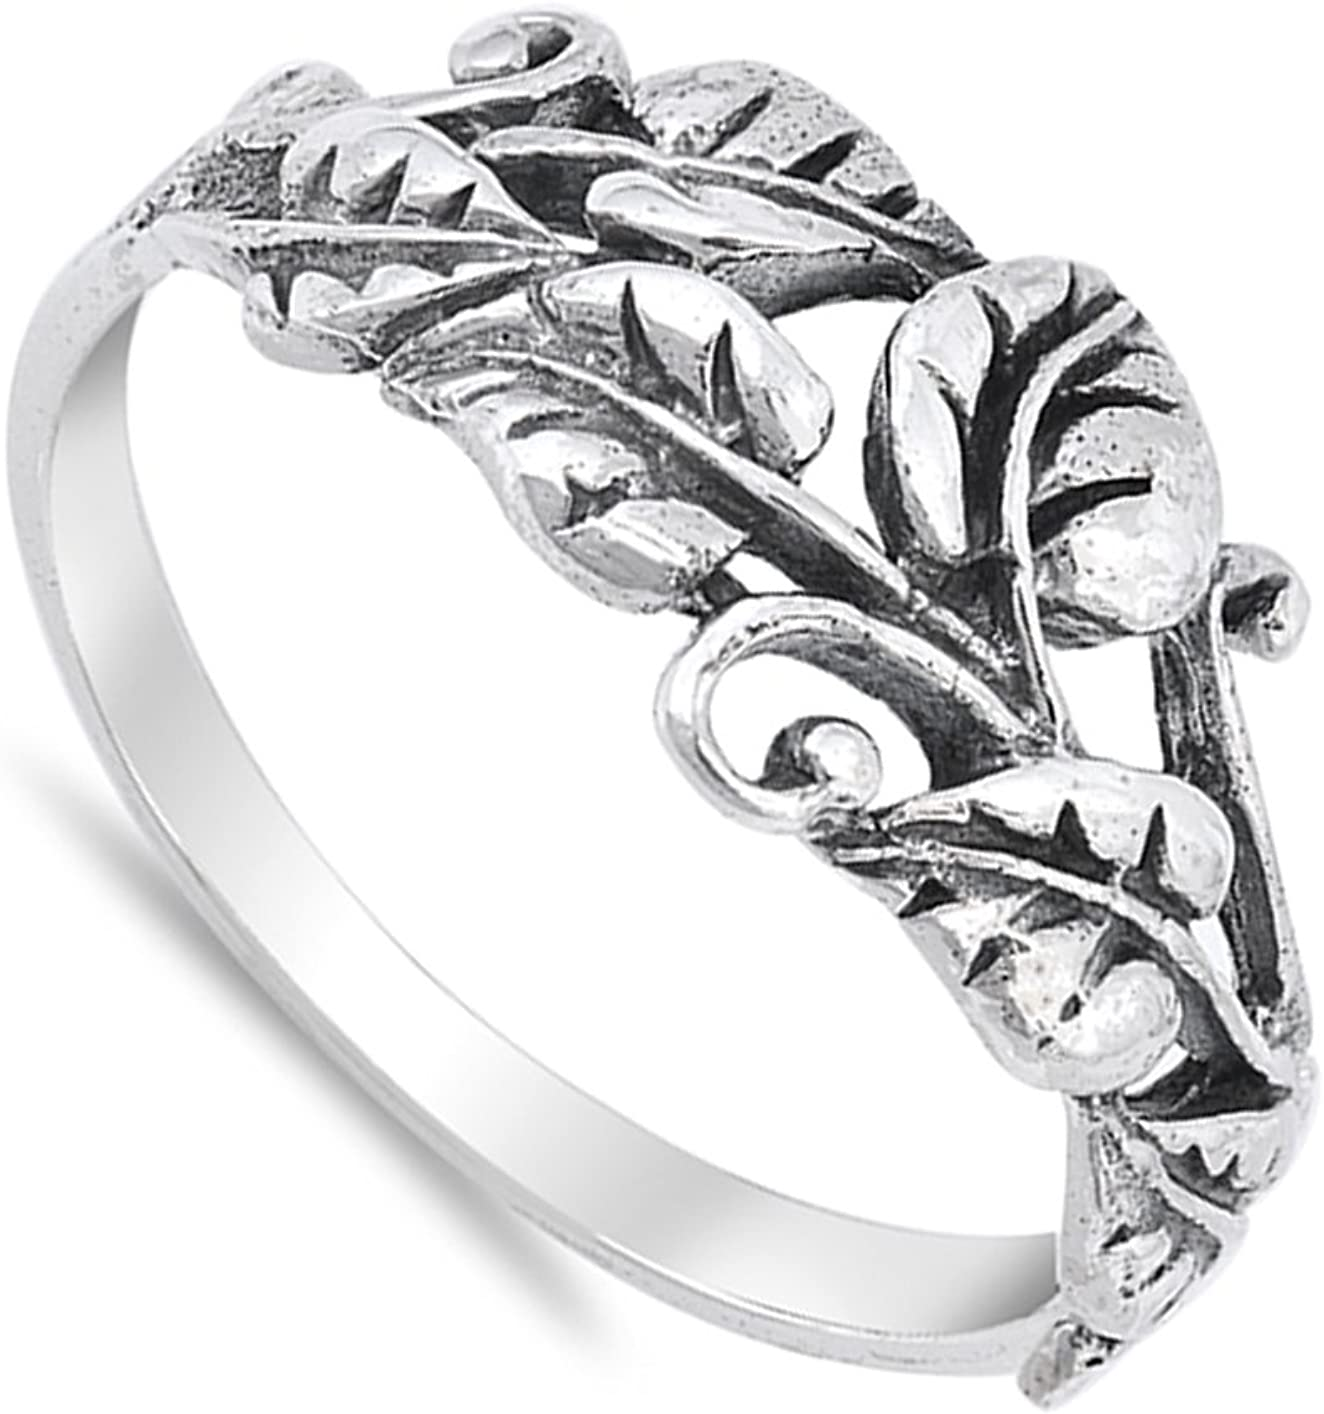 925 Sterling Silver 7mm Design Edge Size 5 to 12 Band Ring